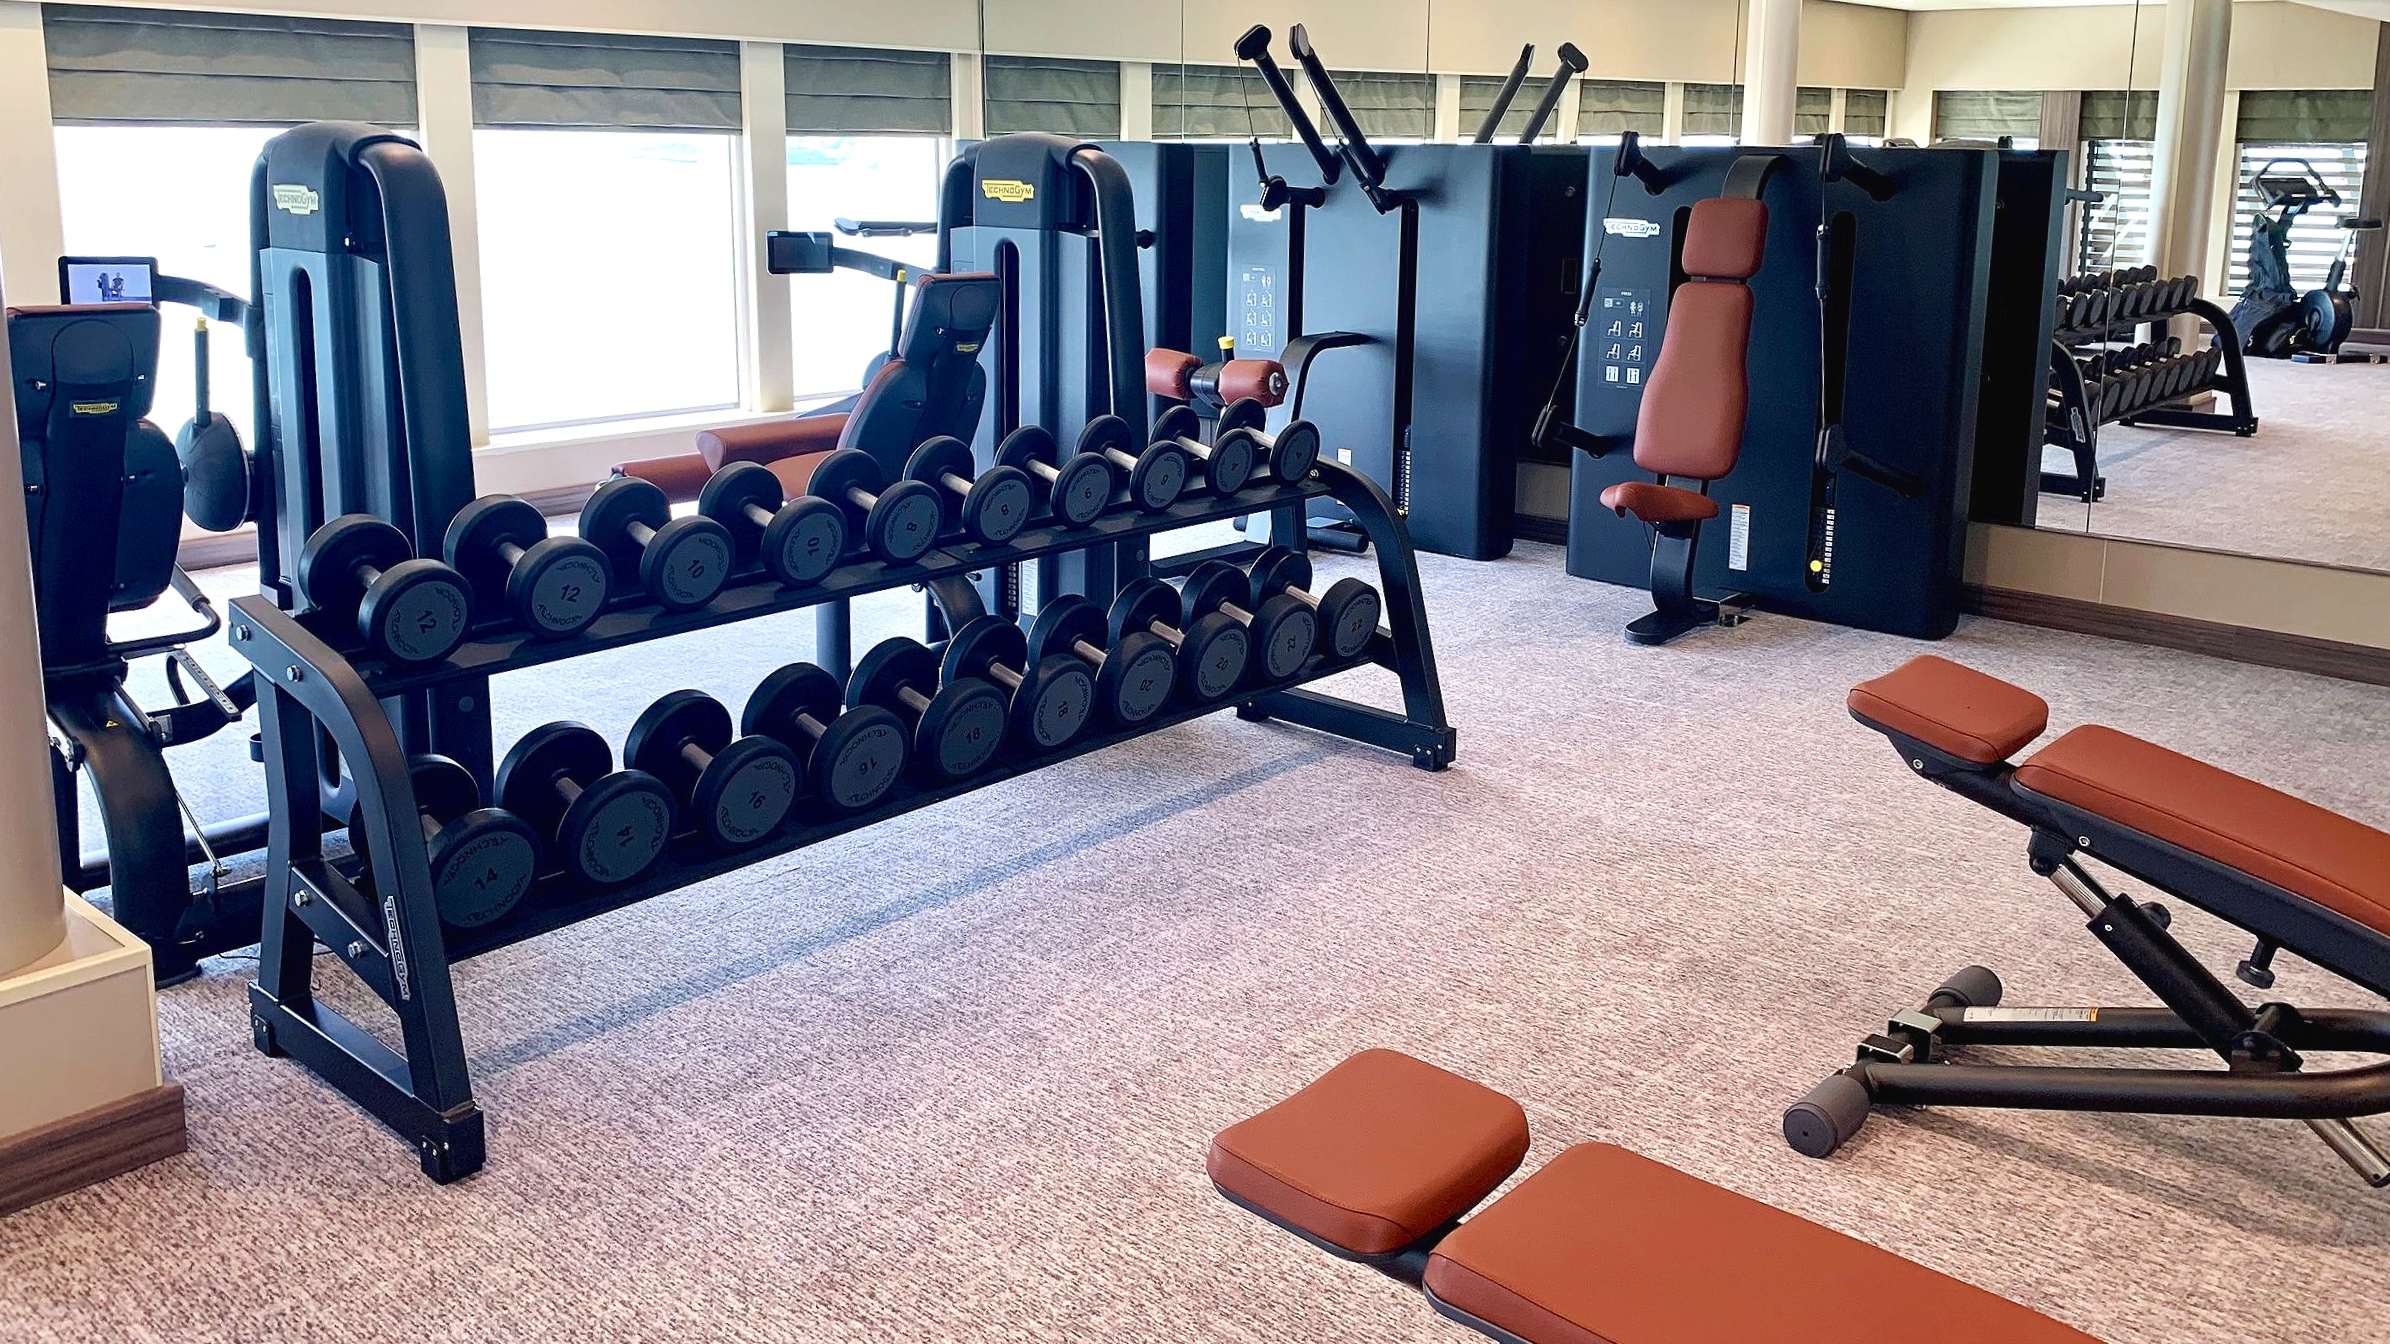 There are plenty of free weights too.